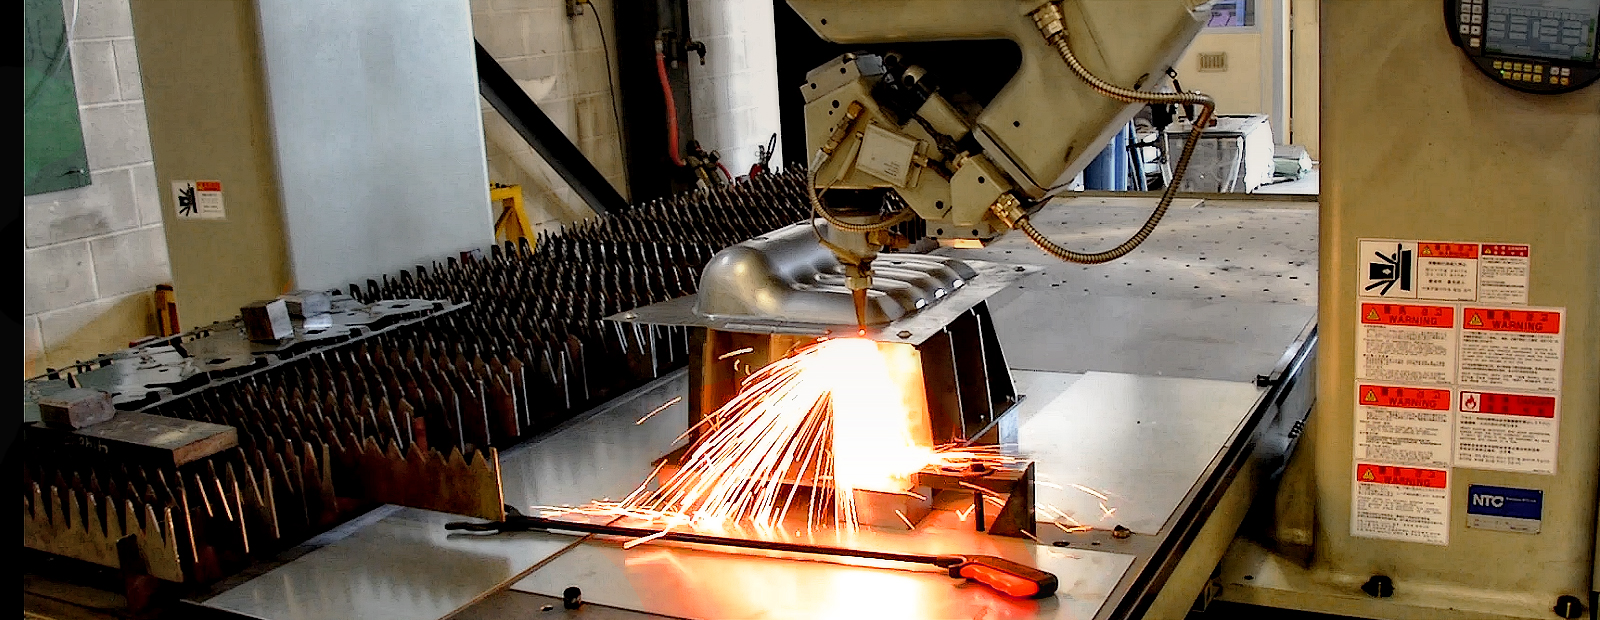 5-Axis Laser Cutting